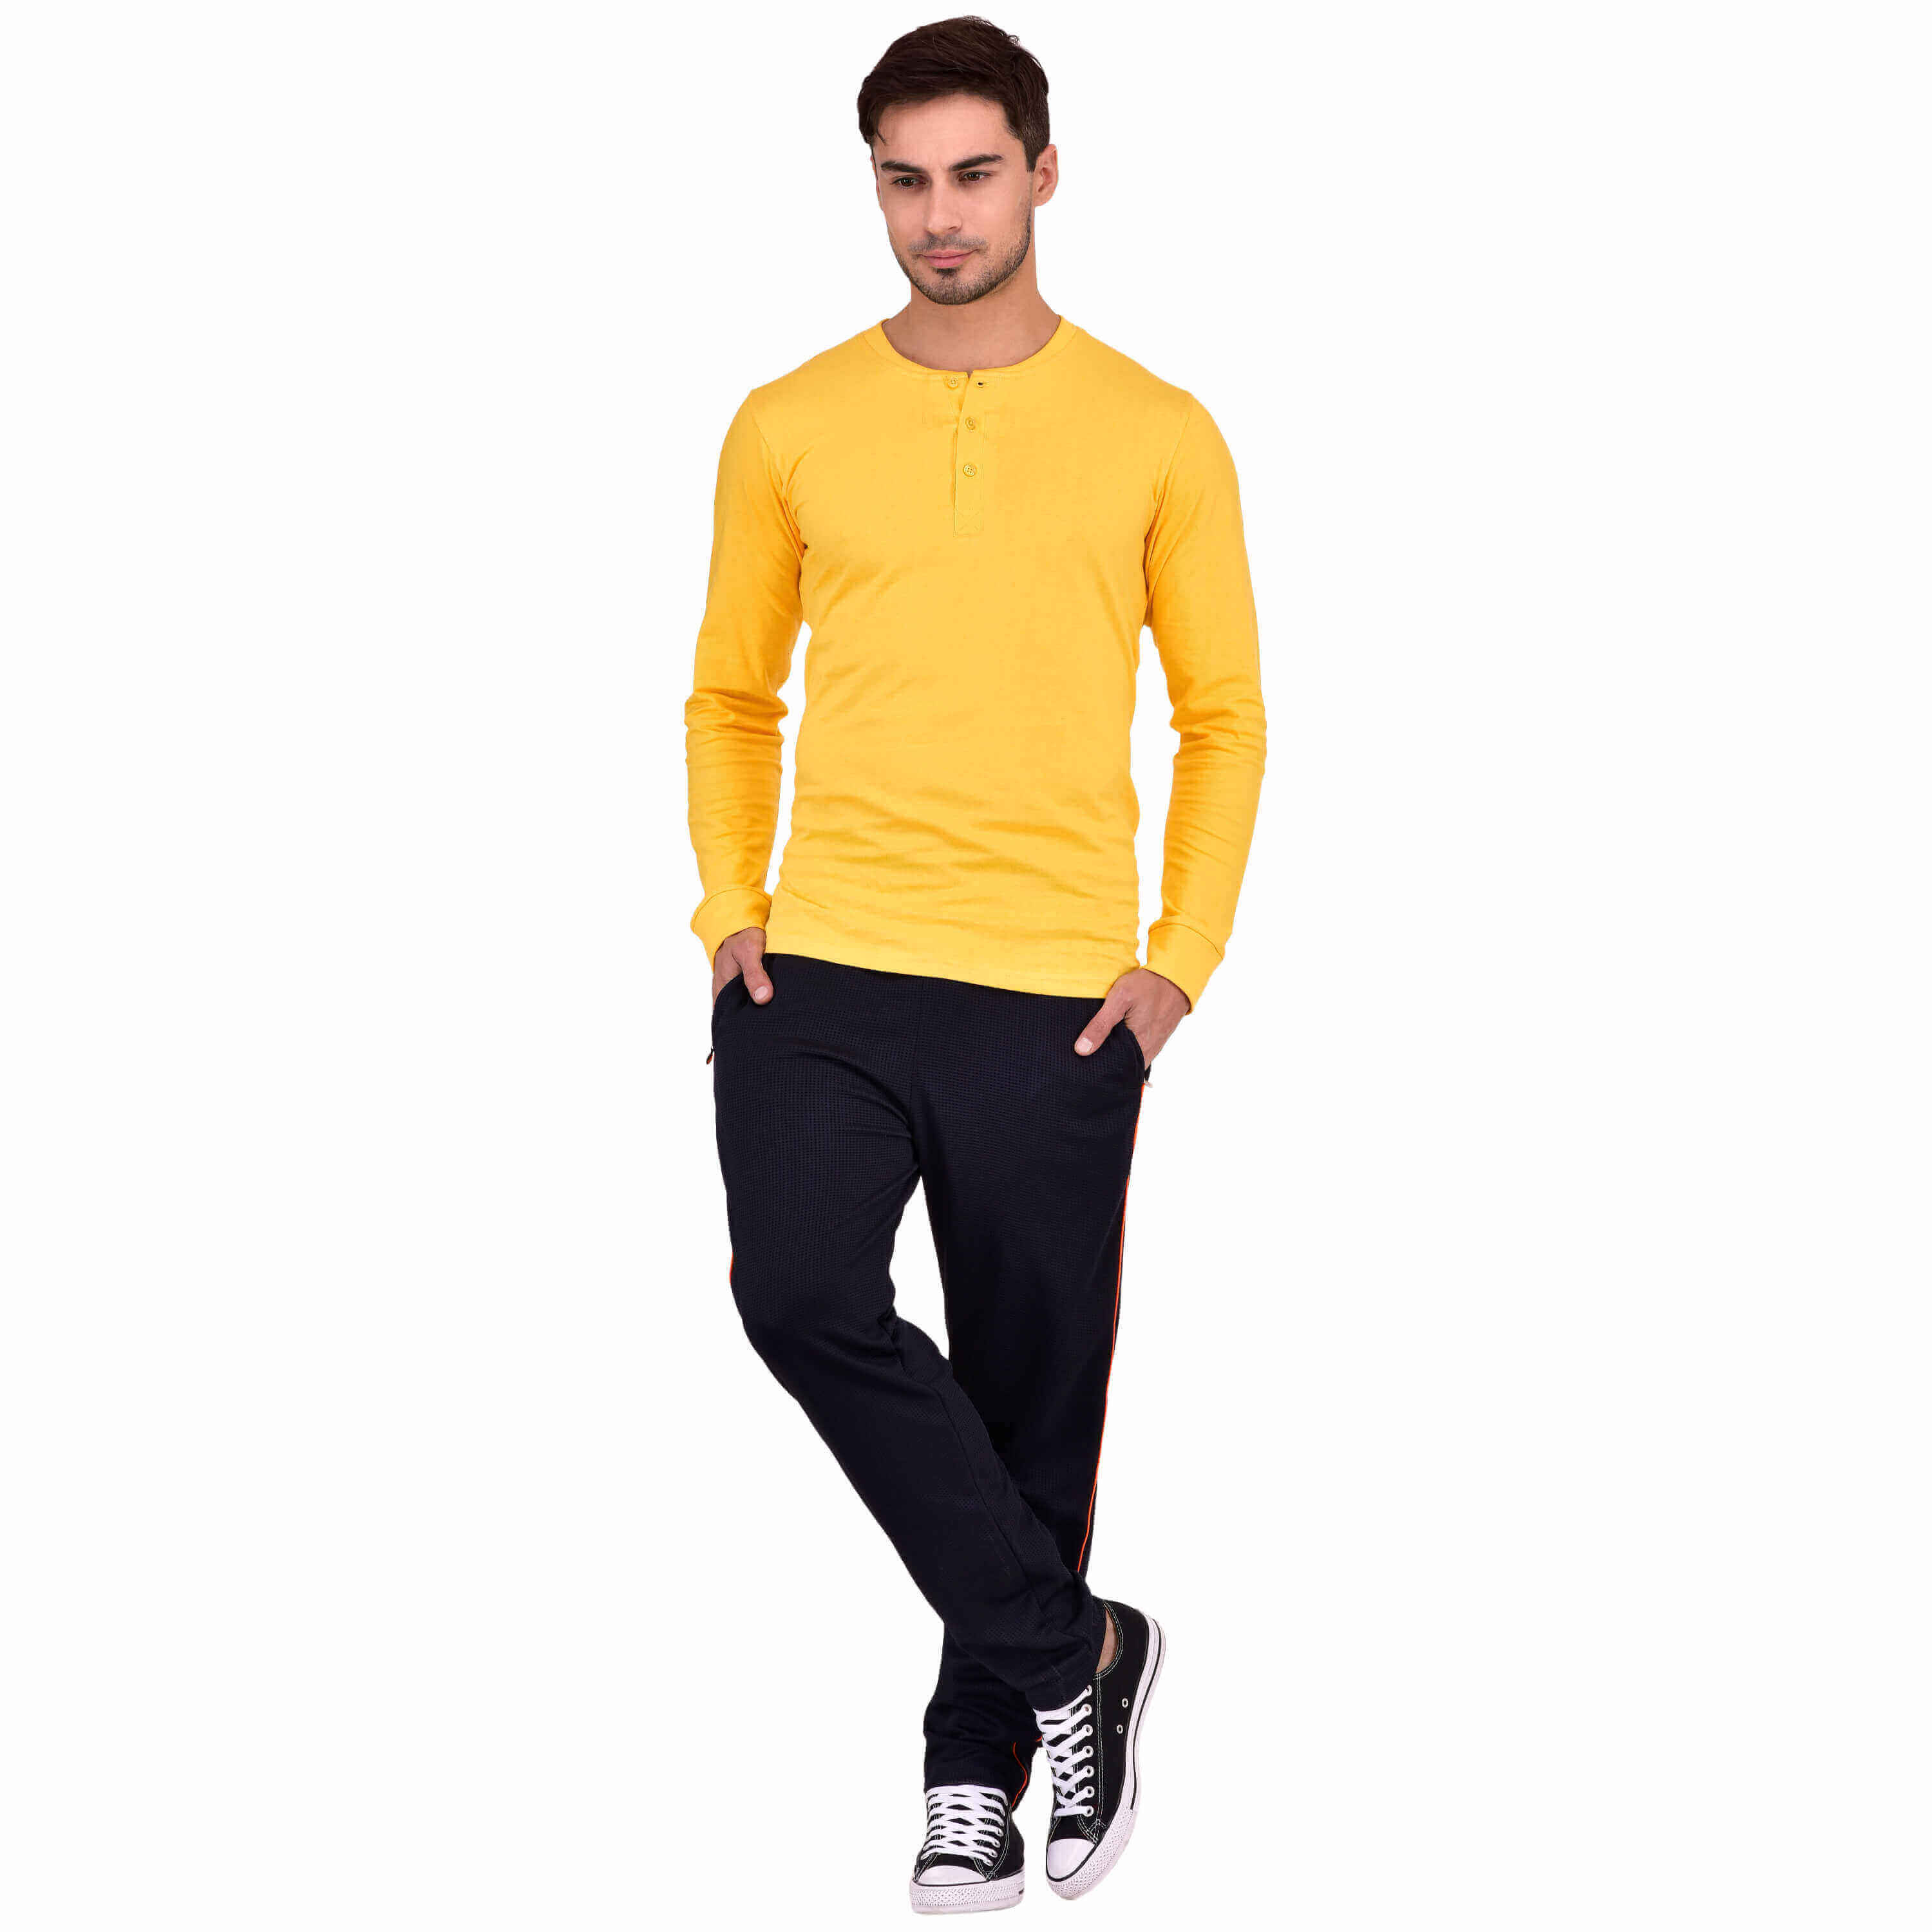 Long T Shirt Manufacturers in Singapore